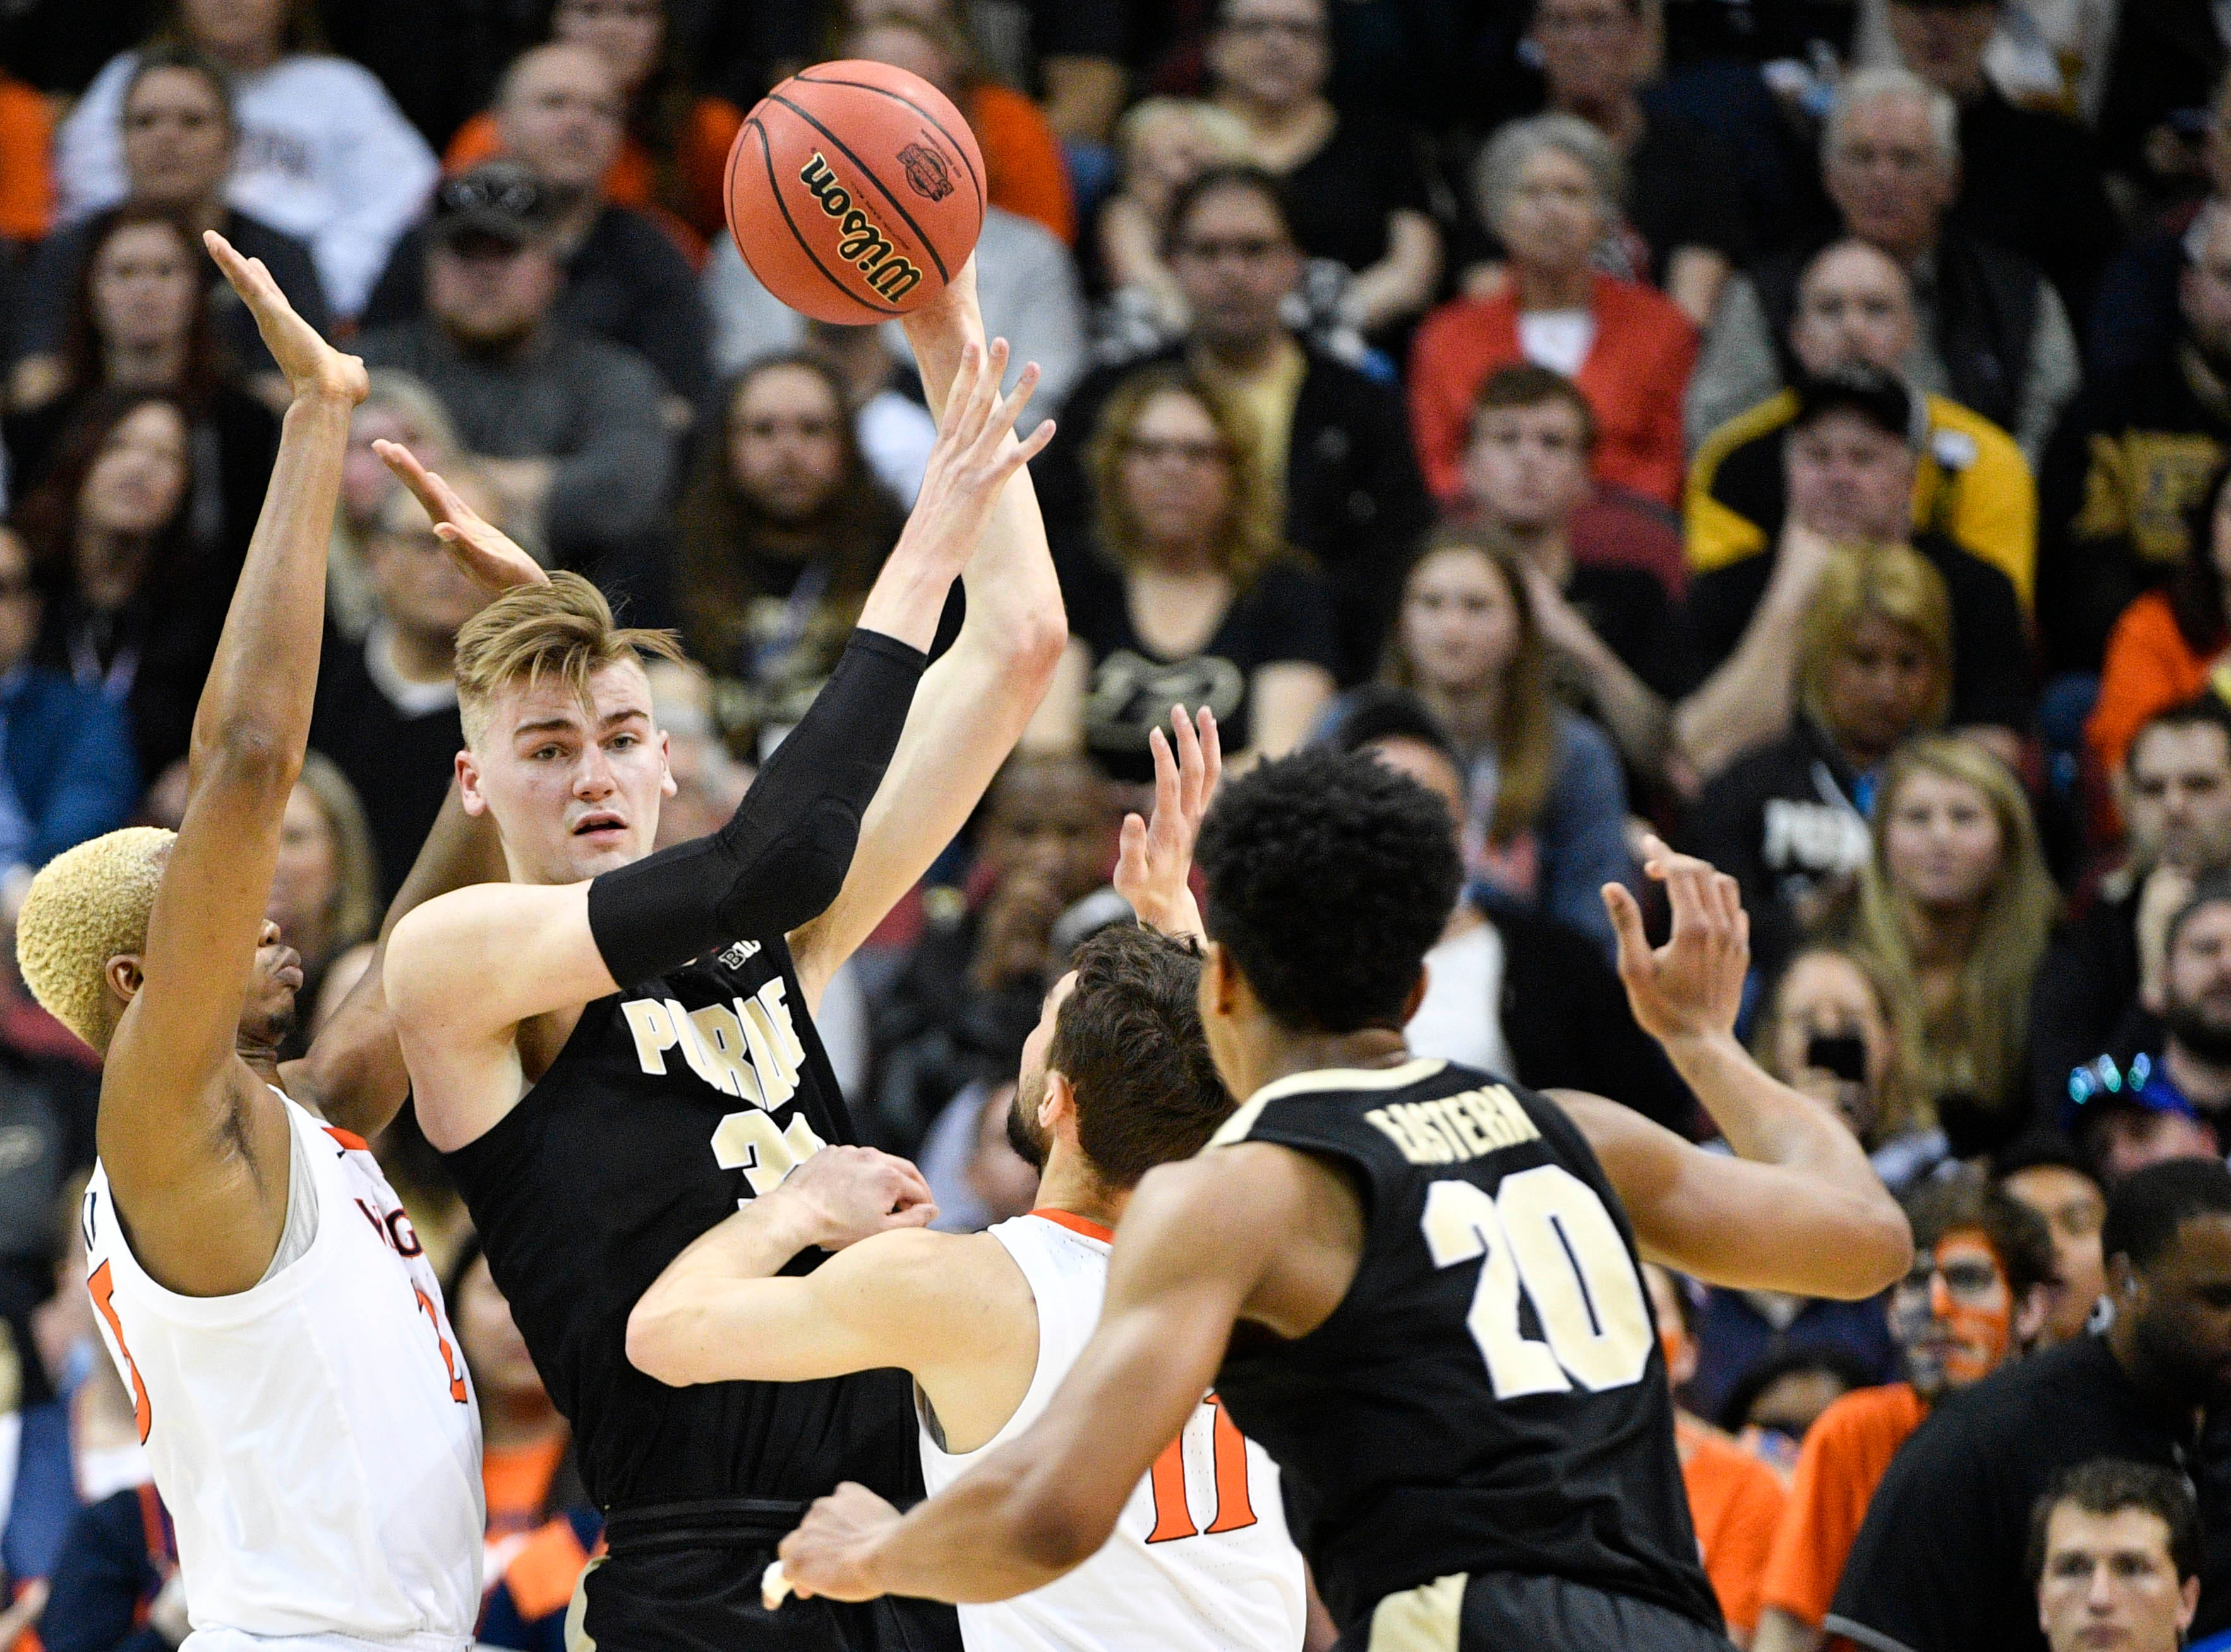 Mar 30, 2019; Louisville, KY, United States; Purdue Boilermakers center Matt Haarms (32) looks to pass to guard Nojel Eastern (20) as Virginia Cavaliers guard Ty Jerome (11) and forward Mamadi Diakite (25) defend during the first half in the championship game of the south regional of the 2019 NCAA Tournament at KFC Yum Center. Mandatory Credit: Jamie Rhodes-USA TODAY Sports